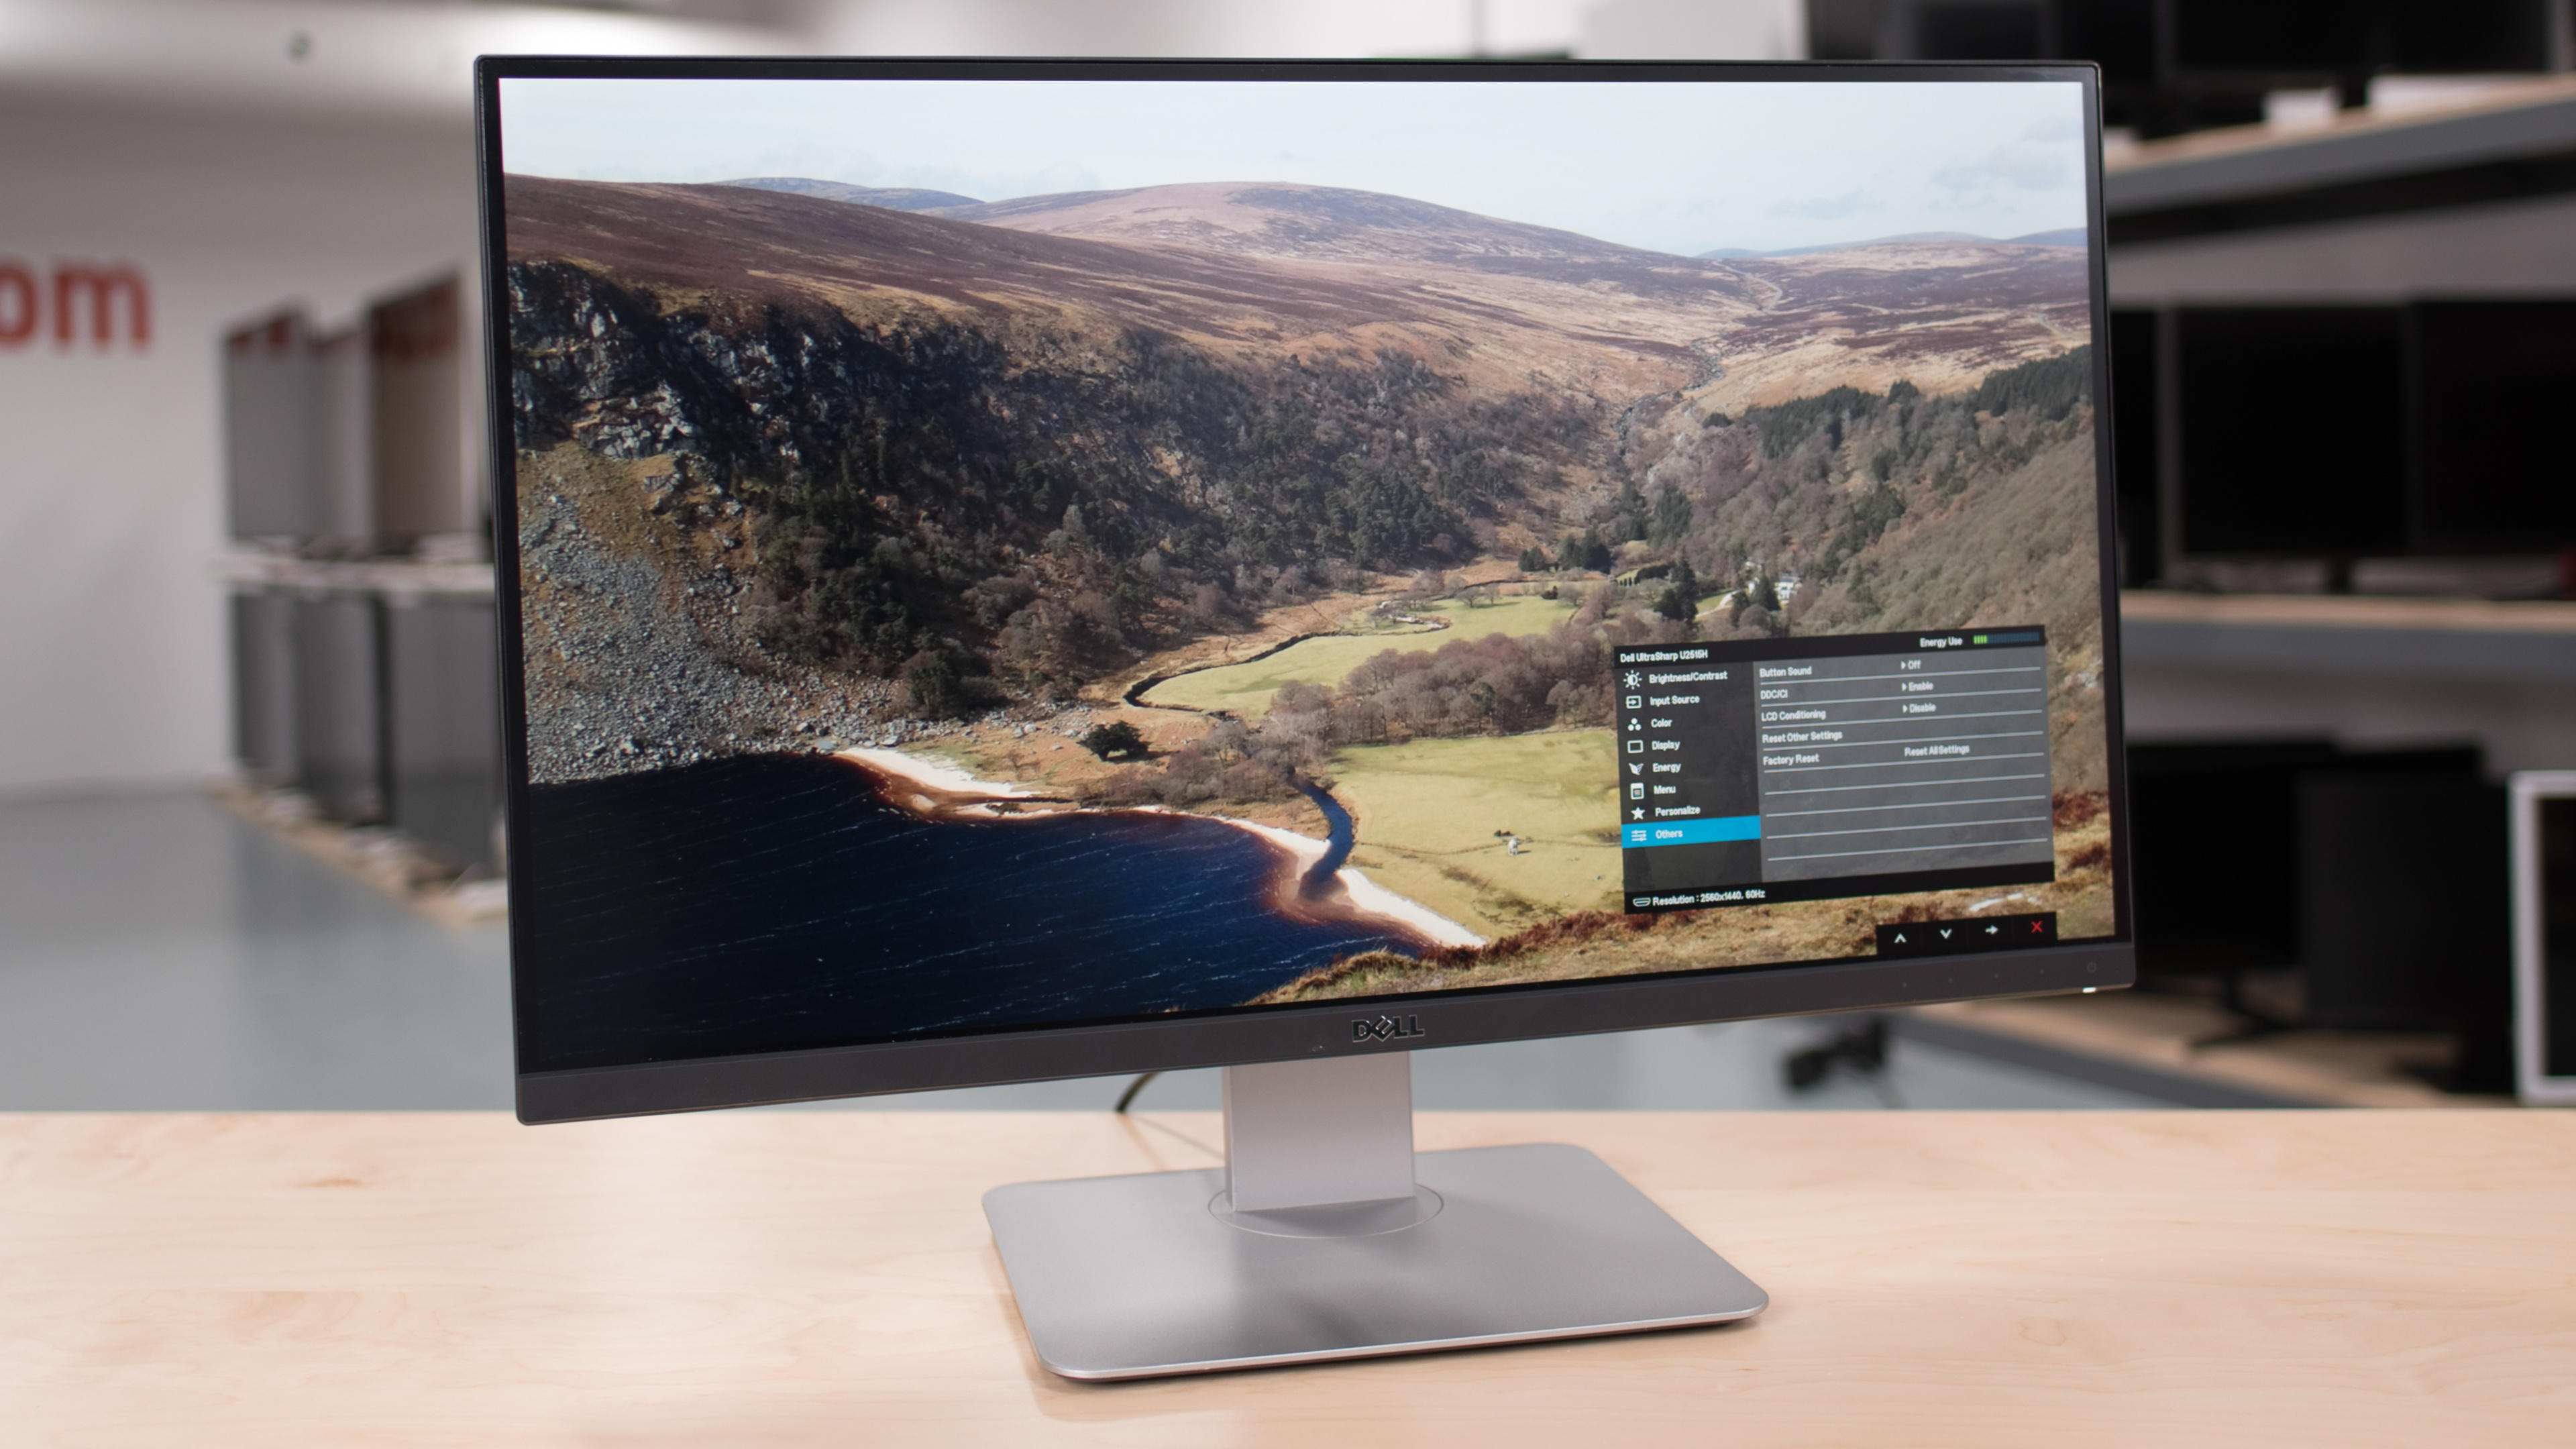 Dell U2515H Review - RTINGS com